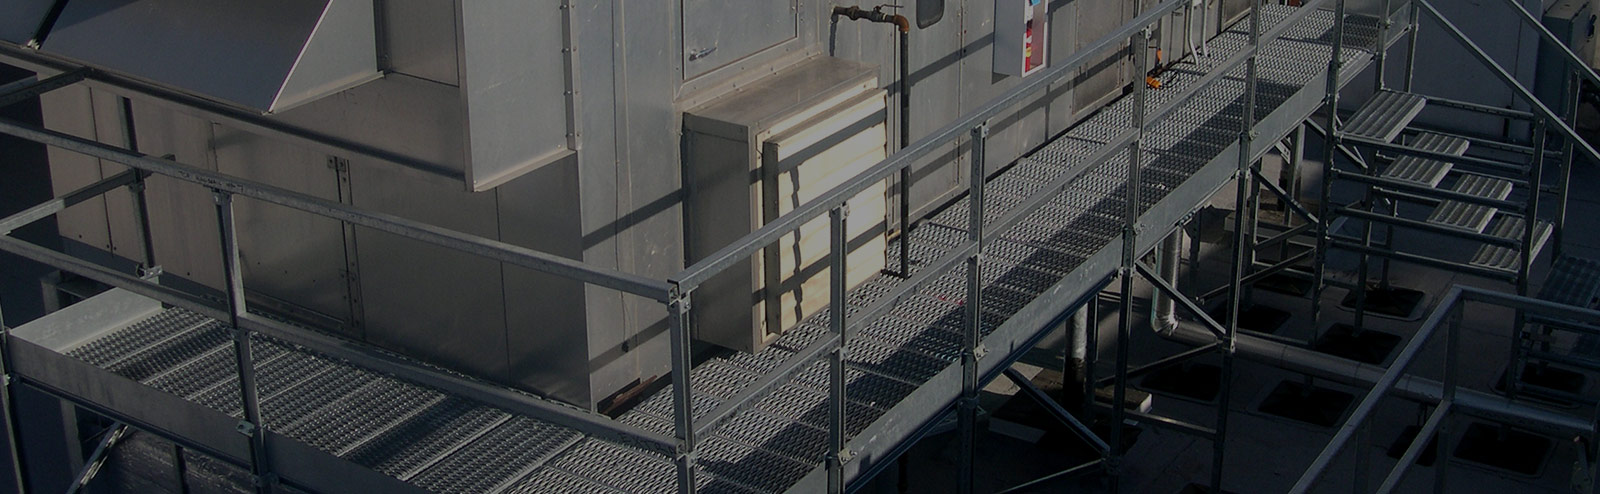 Equipment platform header